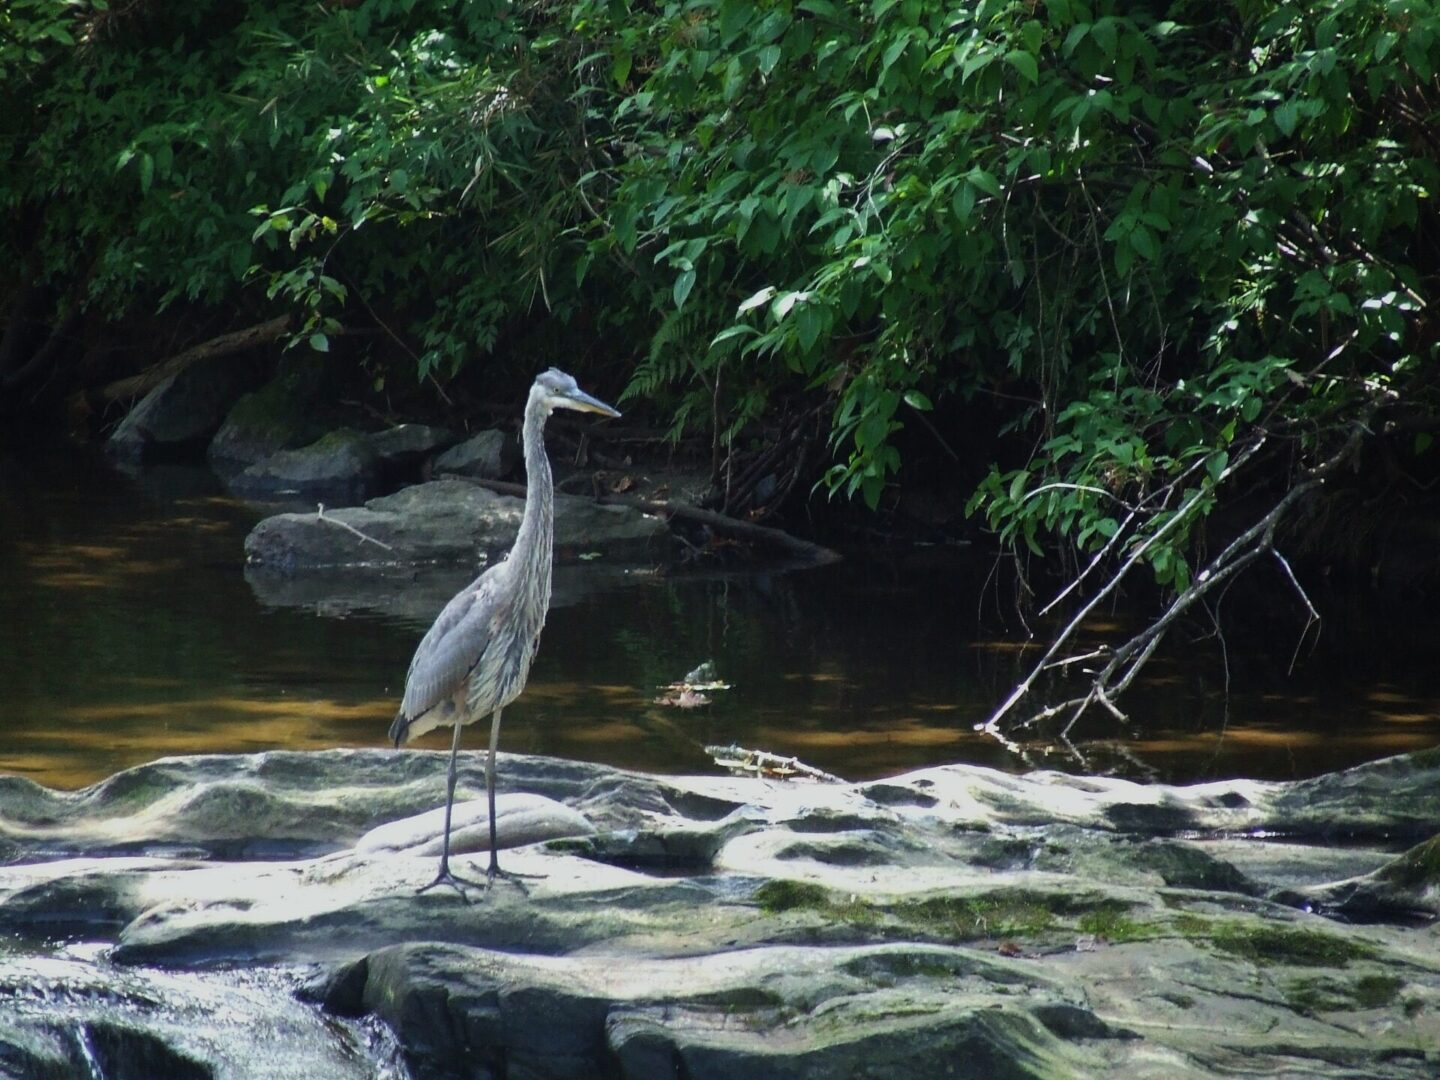 A Great Blue Heron standing on a rock